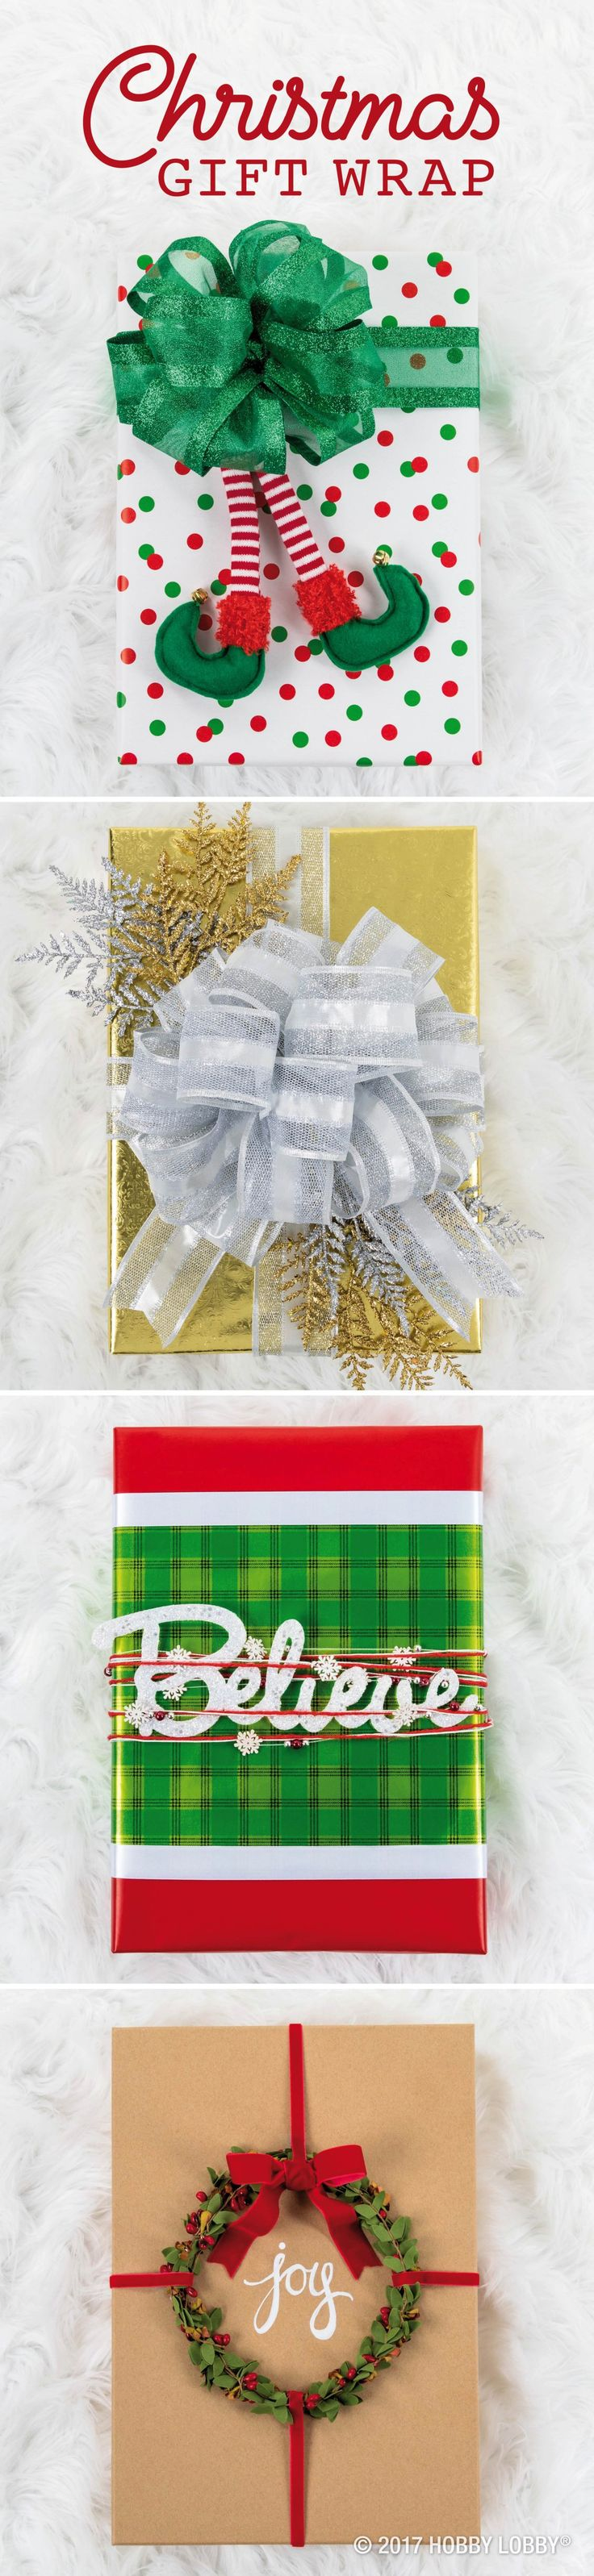 Wrap your way to present perfection with bows, picks and other embellishments!